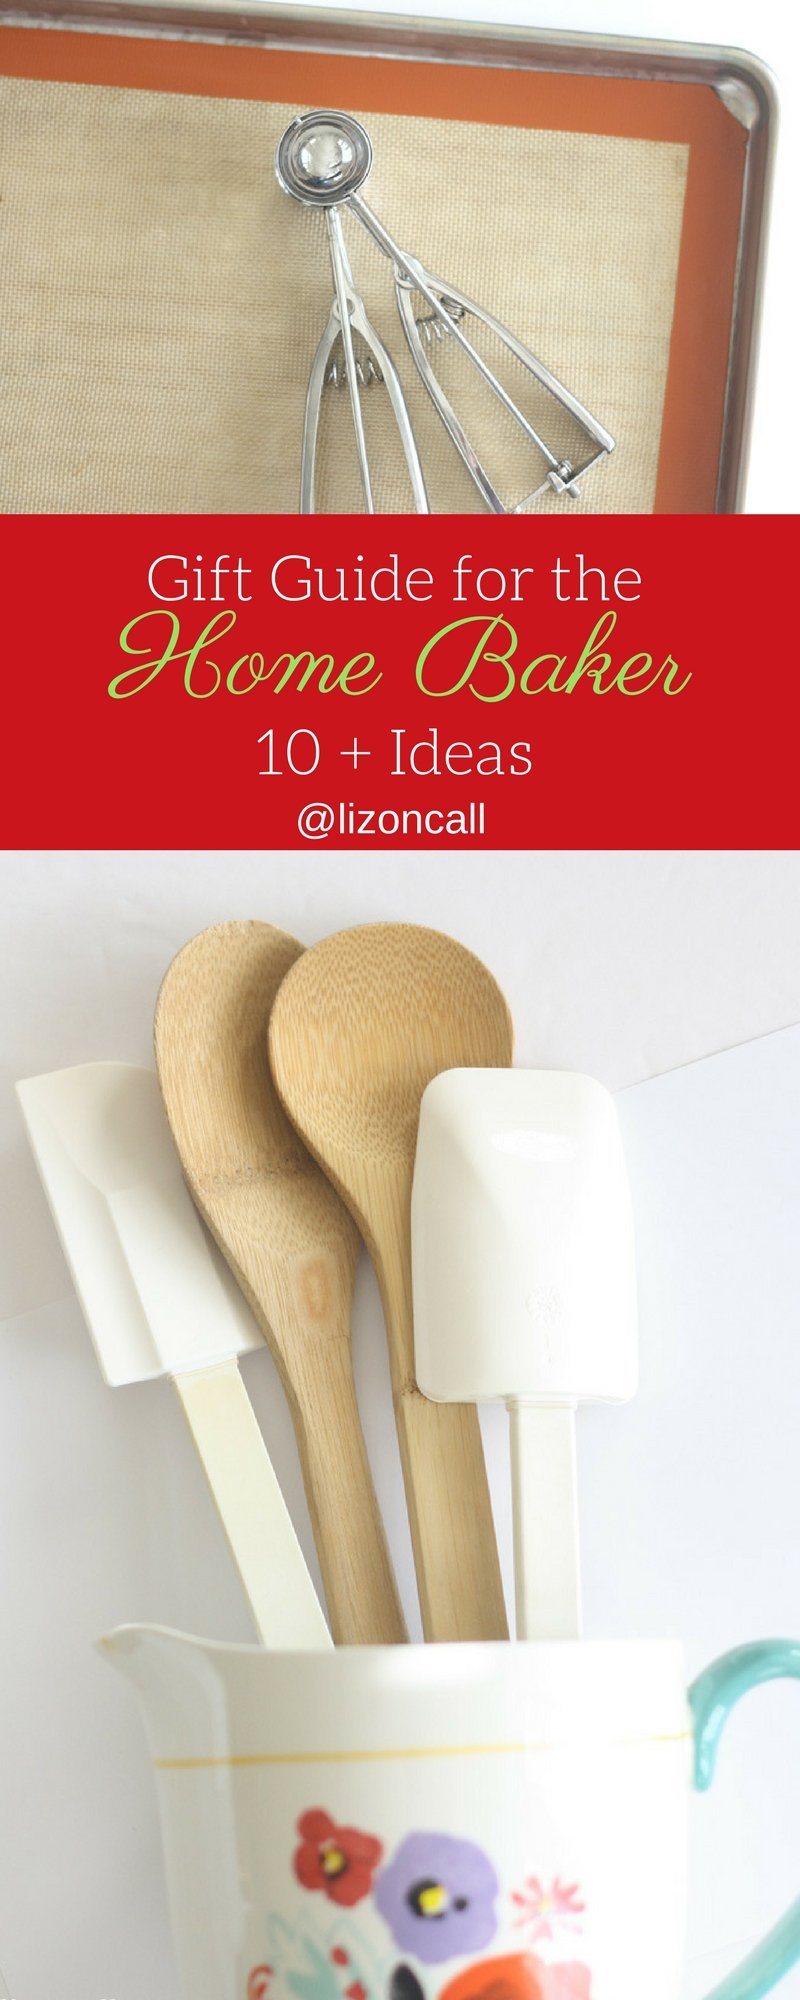 If you know a guy or gal that loves cooking and baking, this Christmas buy them something they can use in their favorite room in the house, the kitchen!  Check out these 10 gifts for the home baker. #giftguide #bakinggiftguide #homebaker #christmas